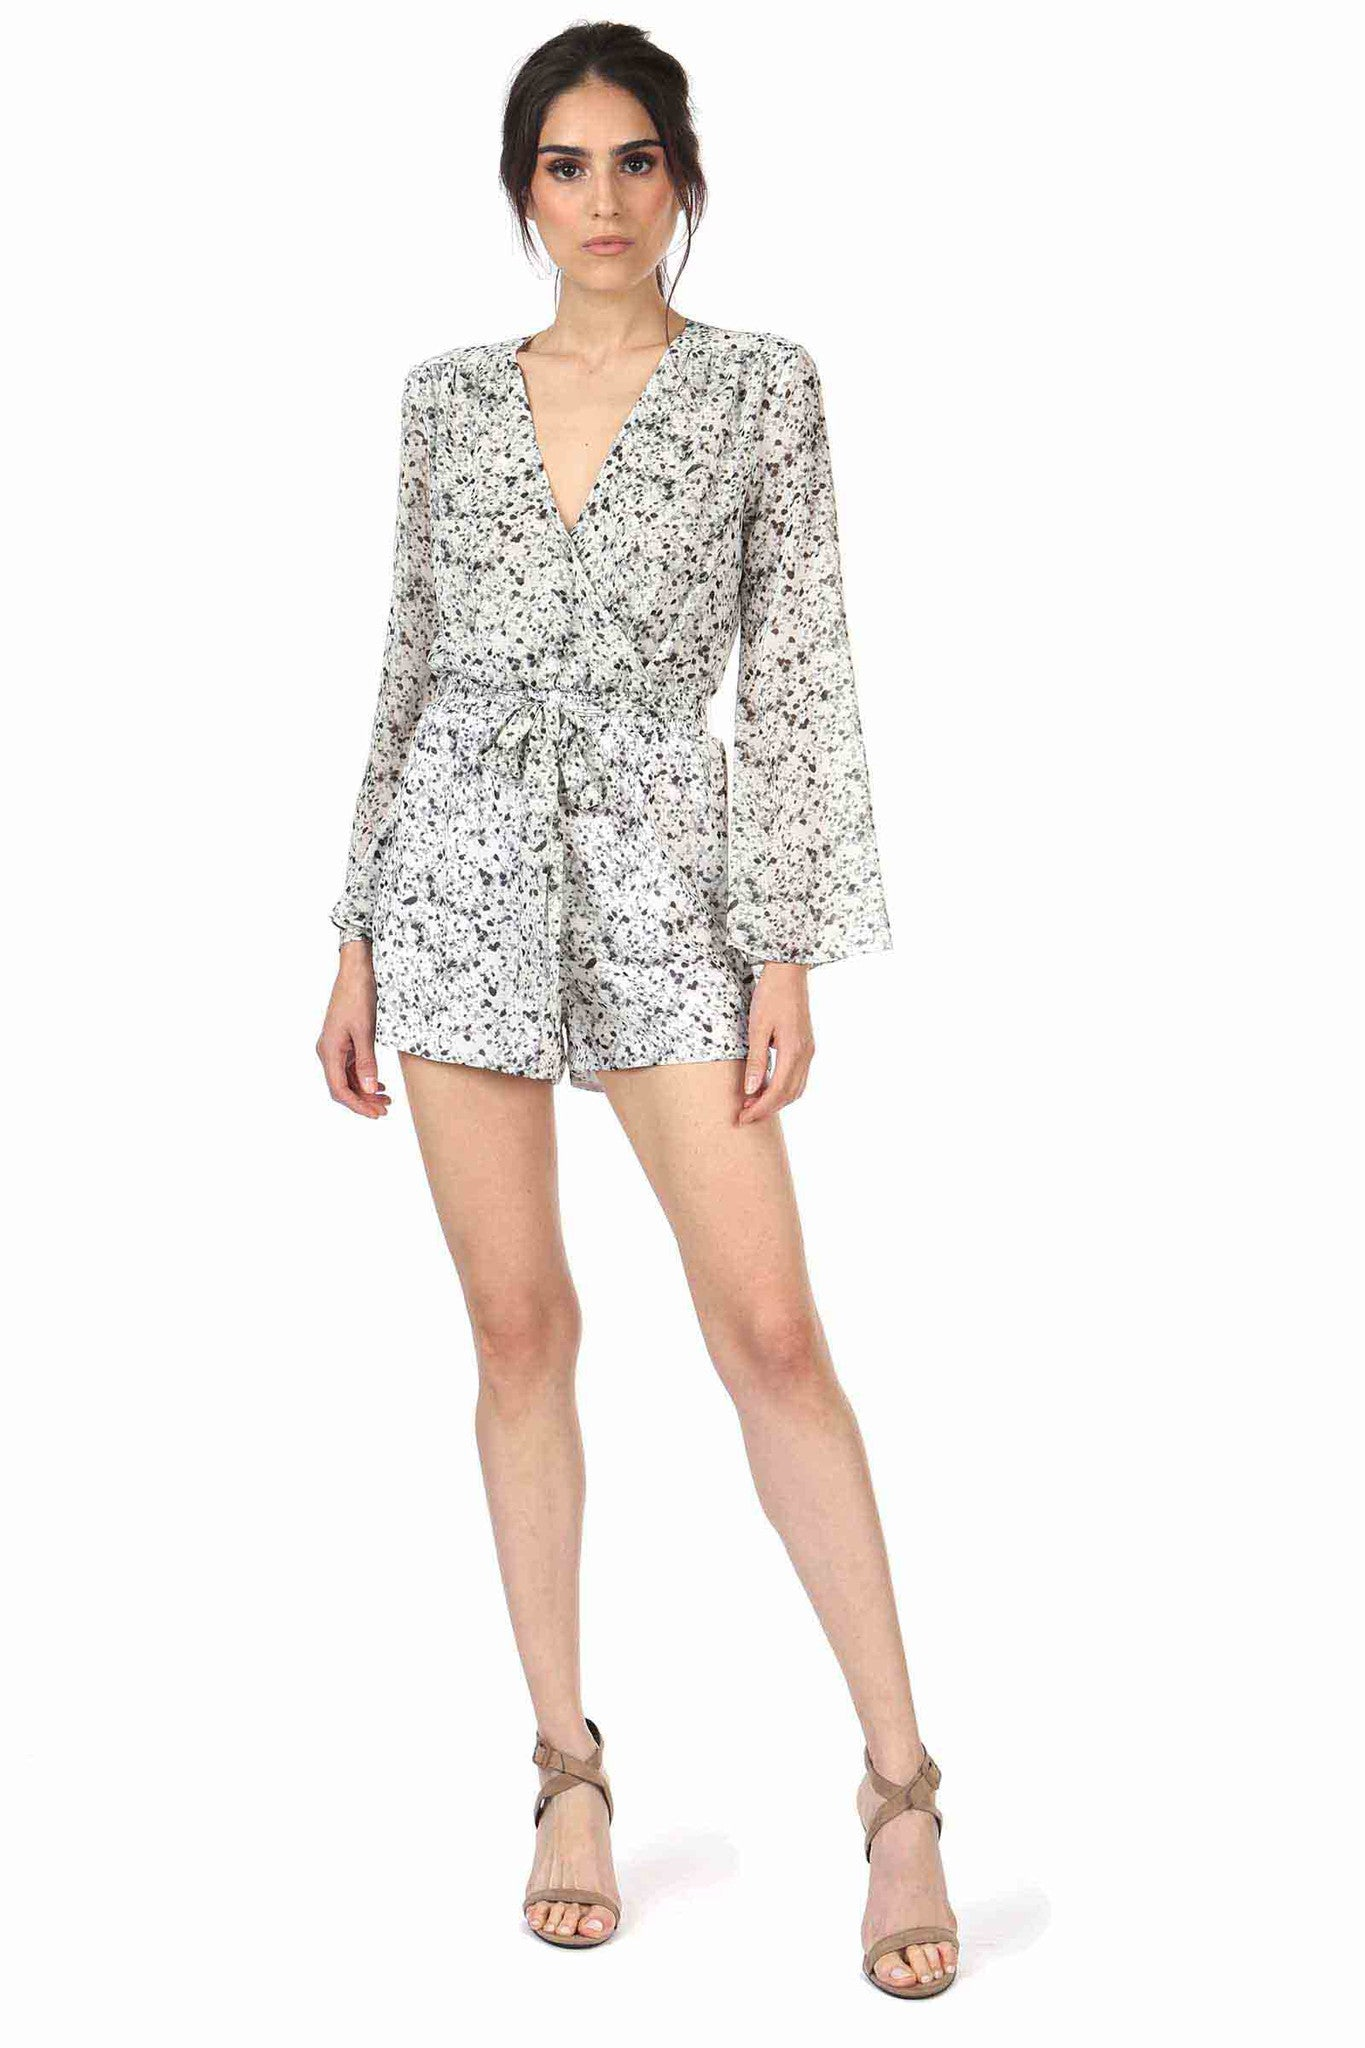 Jay Godfrey Black and White Printed Romper - Front View